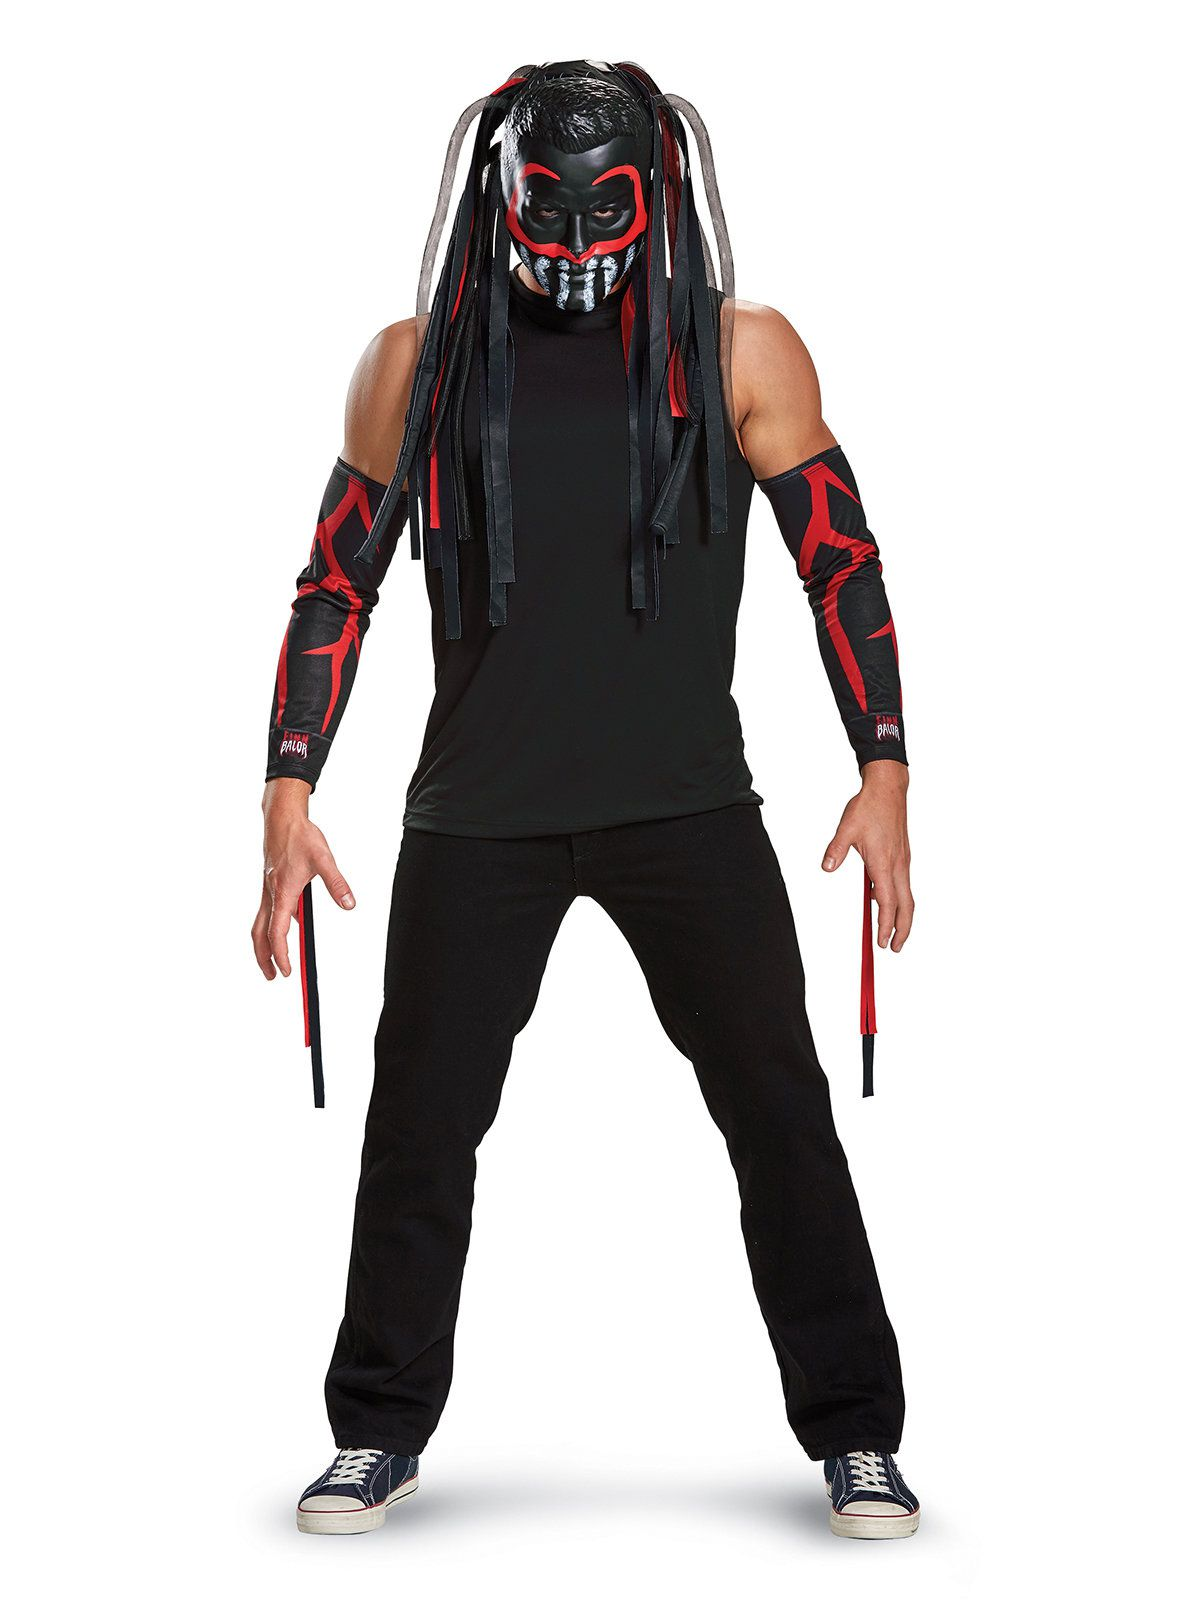 WWE Finn Balor Adult Costume Kit  sc 1 st  Wholesale Halloween Costumes & Wrestling Halloween Costumes at Low Wholesale Prices